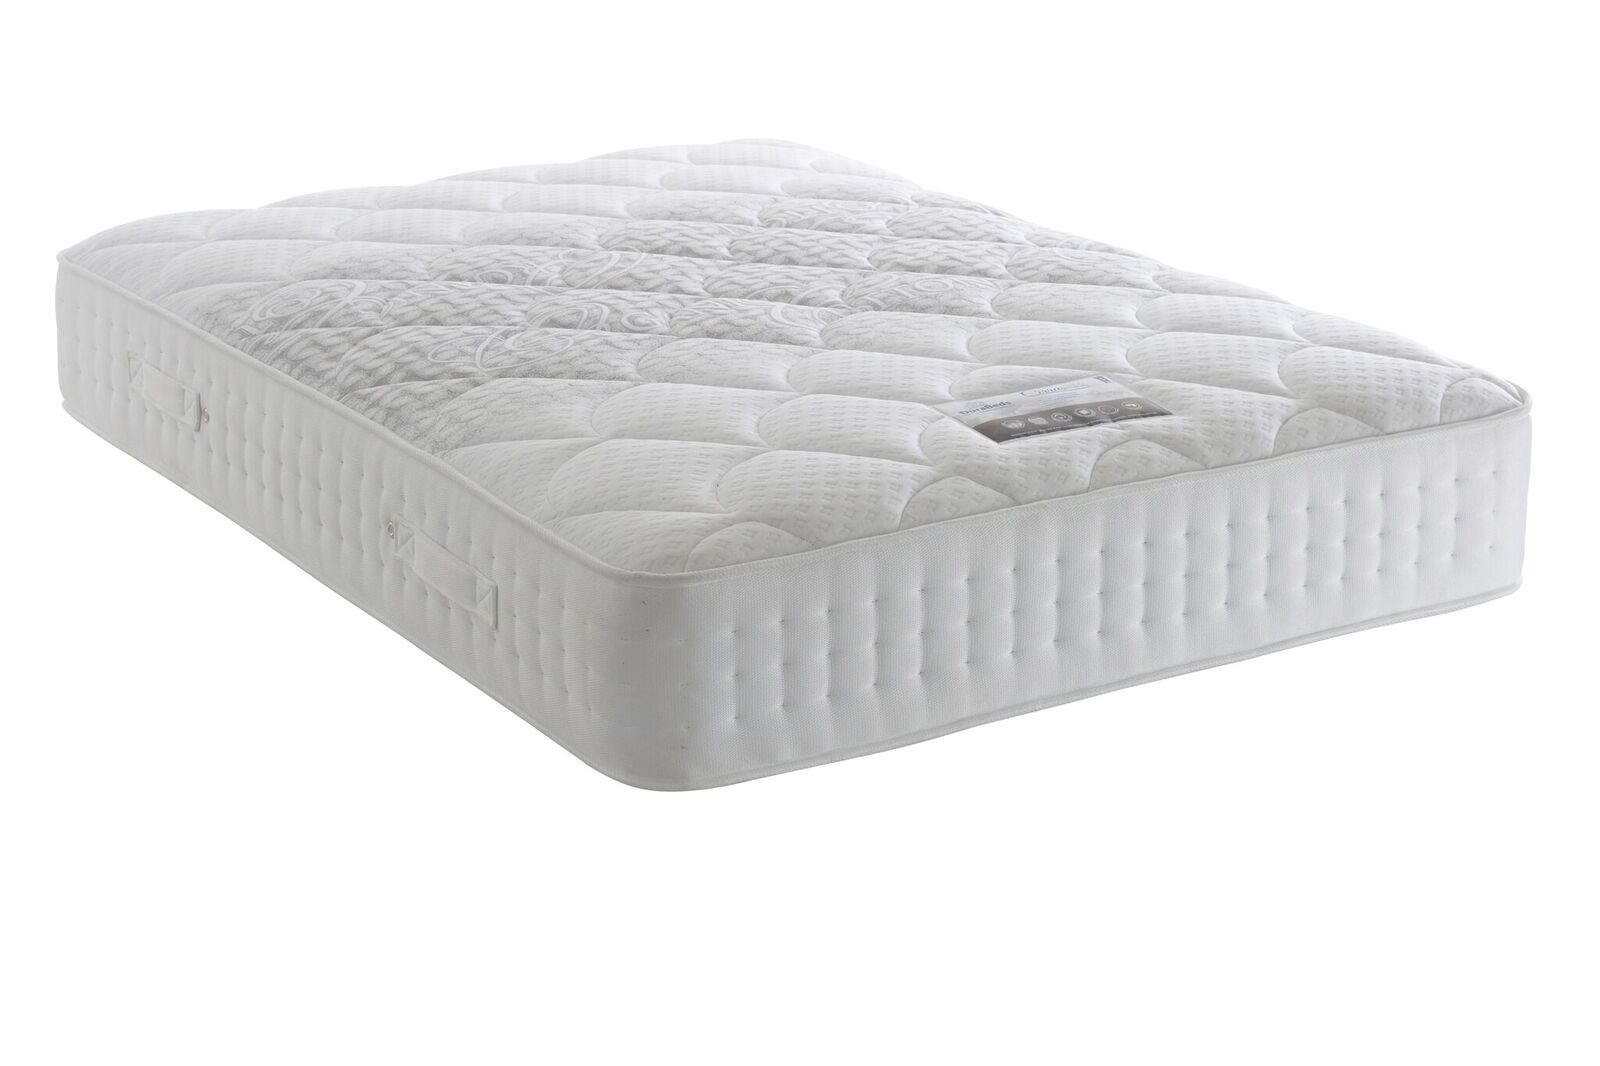 Durabed Climate 2000 Double Divan Set 2 Free Drawers & Headboard